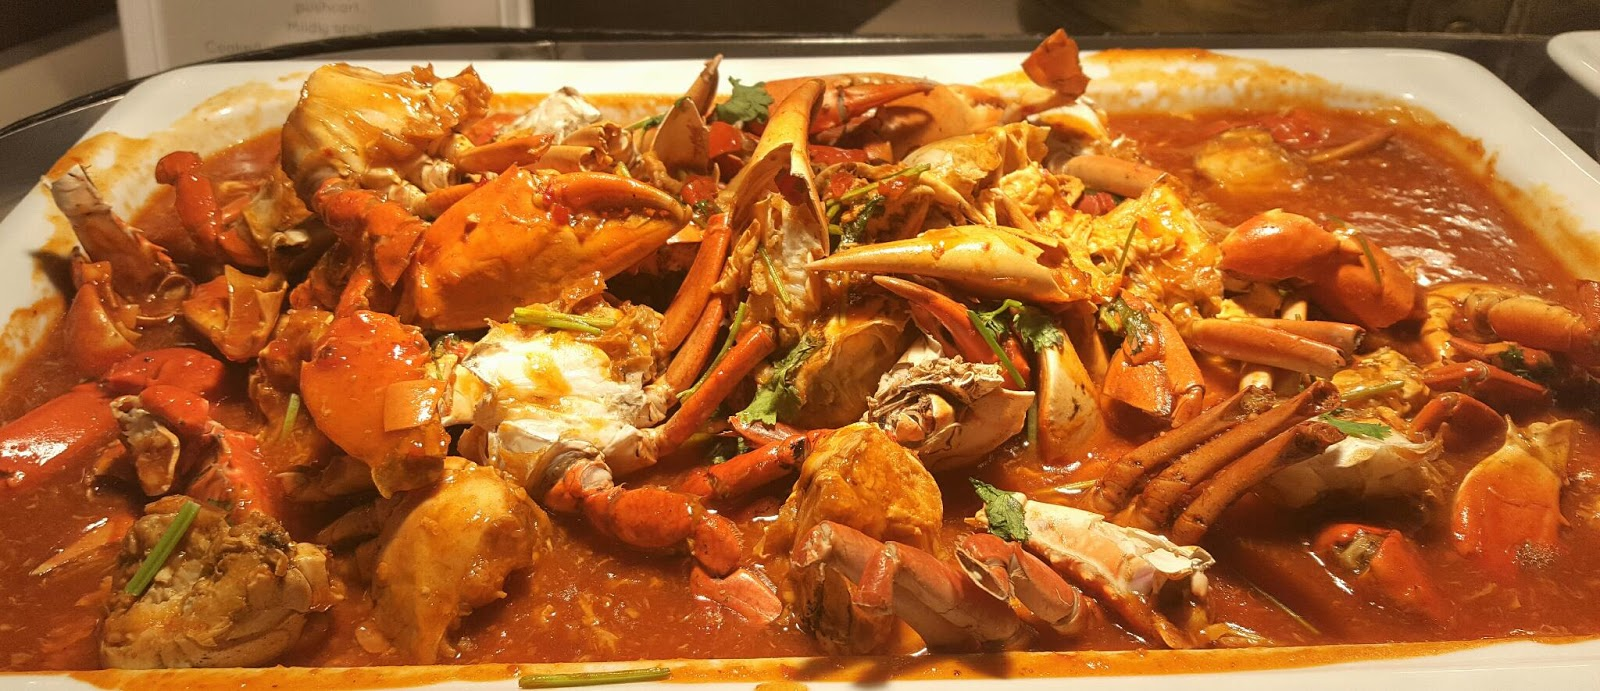 [Review] Buffet At Ginger (PARKROYAL On Beach Road)